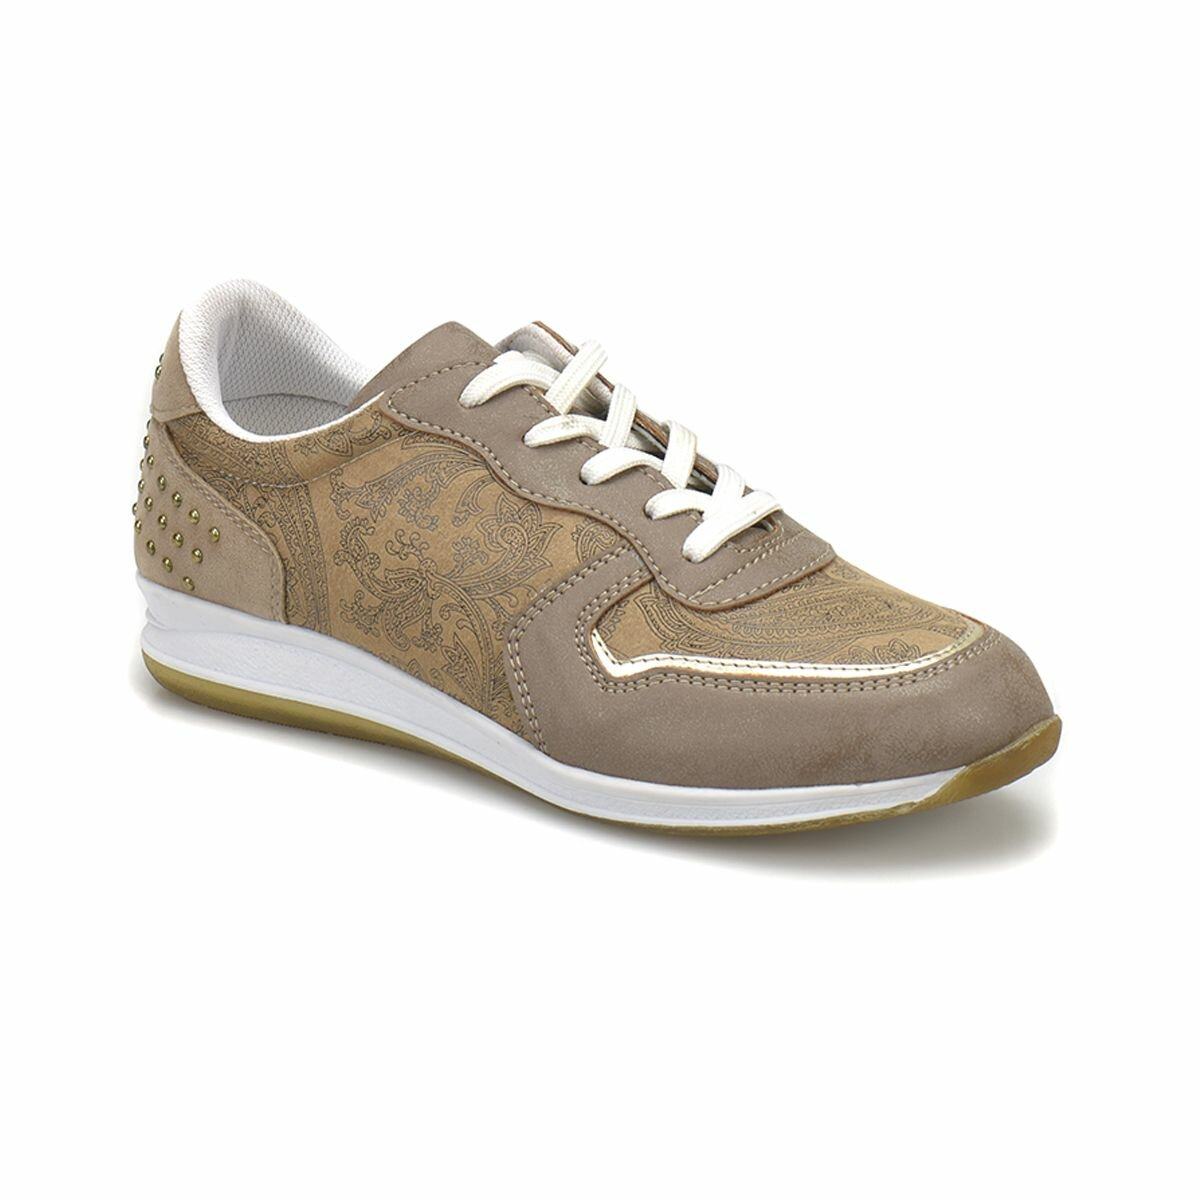 flo-cs18024-brown-women-'s-sports-shoes-art-bella